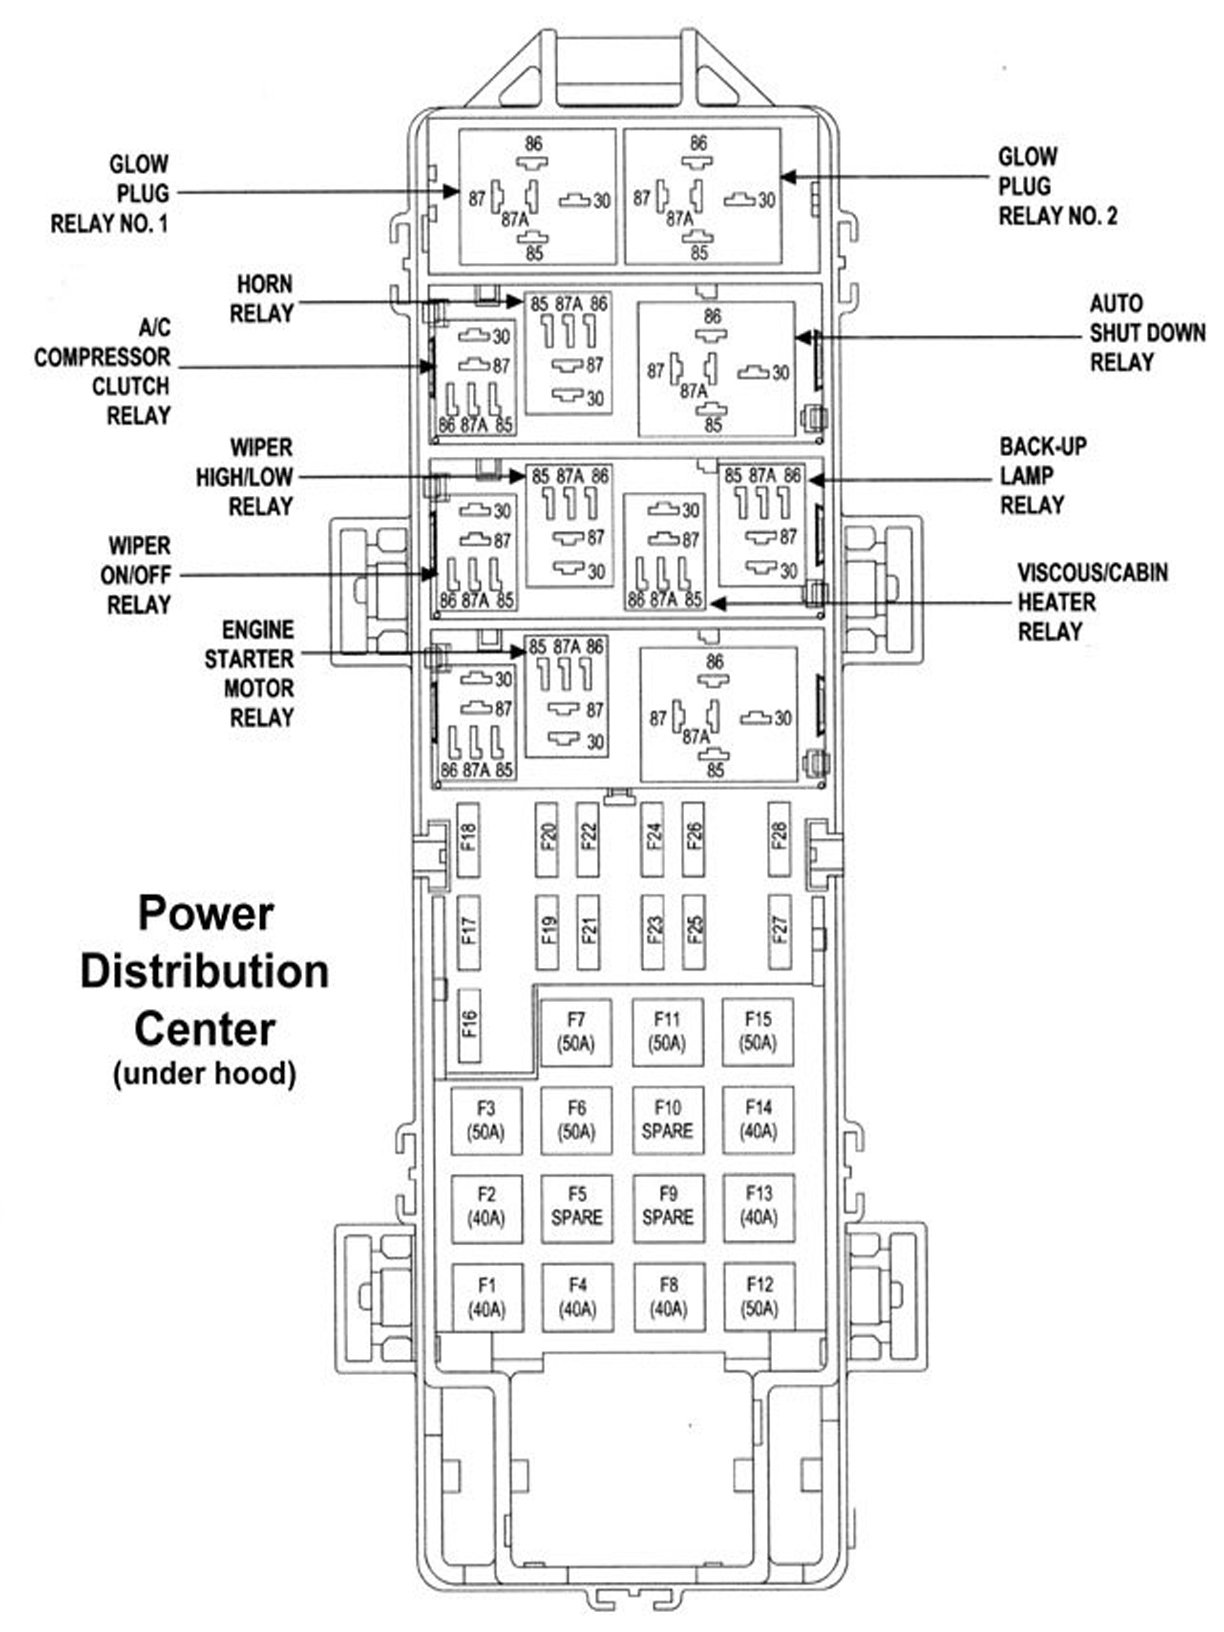 AAAAAAAAug 28 Fuse Box 04 91415 jeep grand cherokee wj 1999 to 2004 fuse box diagram cherokeeforum 2001 jeep grand cherokee fuse box diagram at crackthecode.co